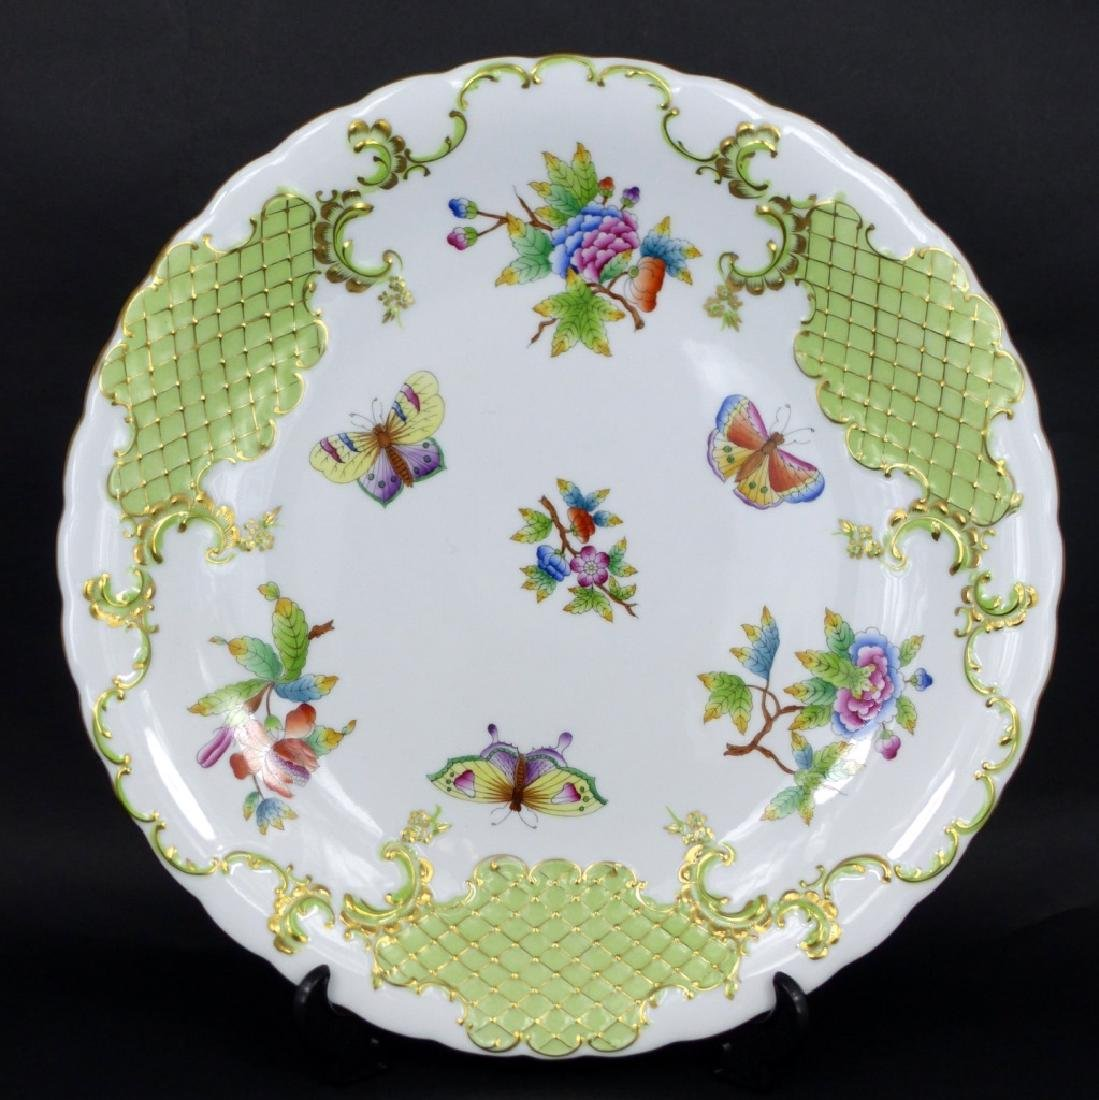 HEREND QUEEN VICTORIA LARGE PORCELAIN PLATE